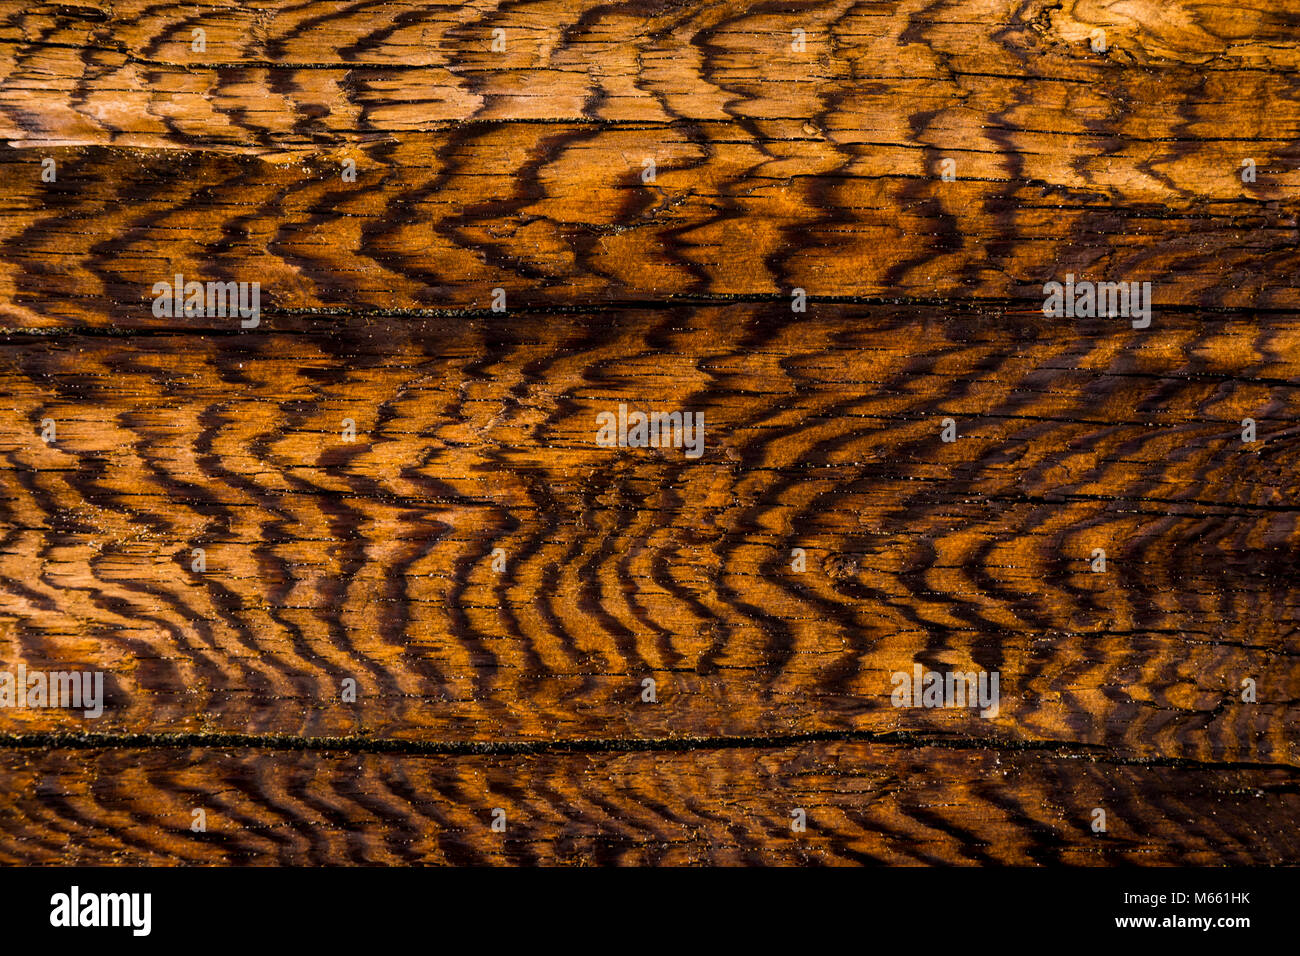 Detail of Driftwood - Washington, Fort Flagler State Park (Vertical or horizontal) Stock Photo